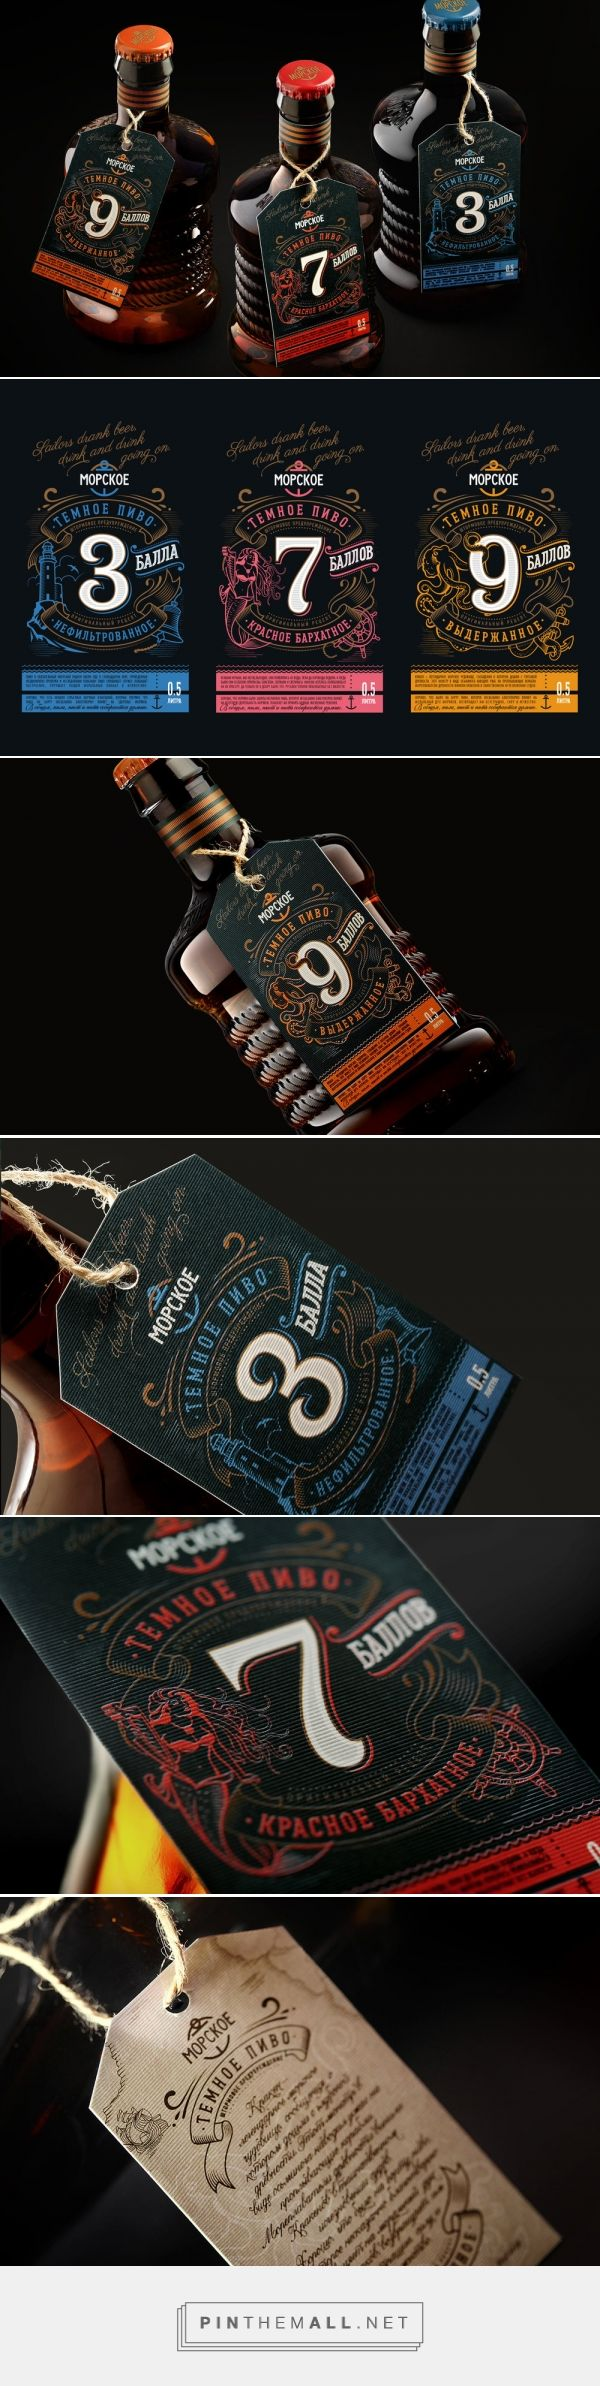 Concepts We Wish Were Real — The Dieline - Branding & Packaging - created via https://pinthemall.net (Beverage Bottle Design)